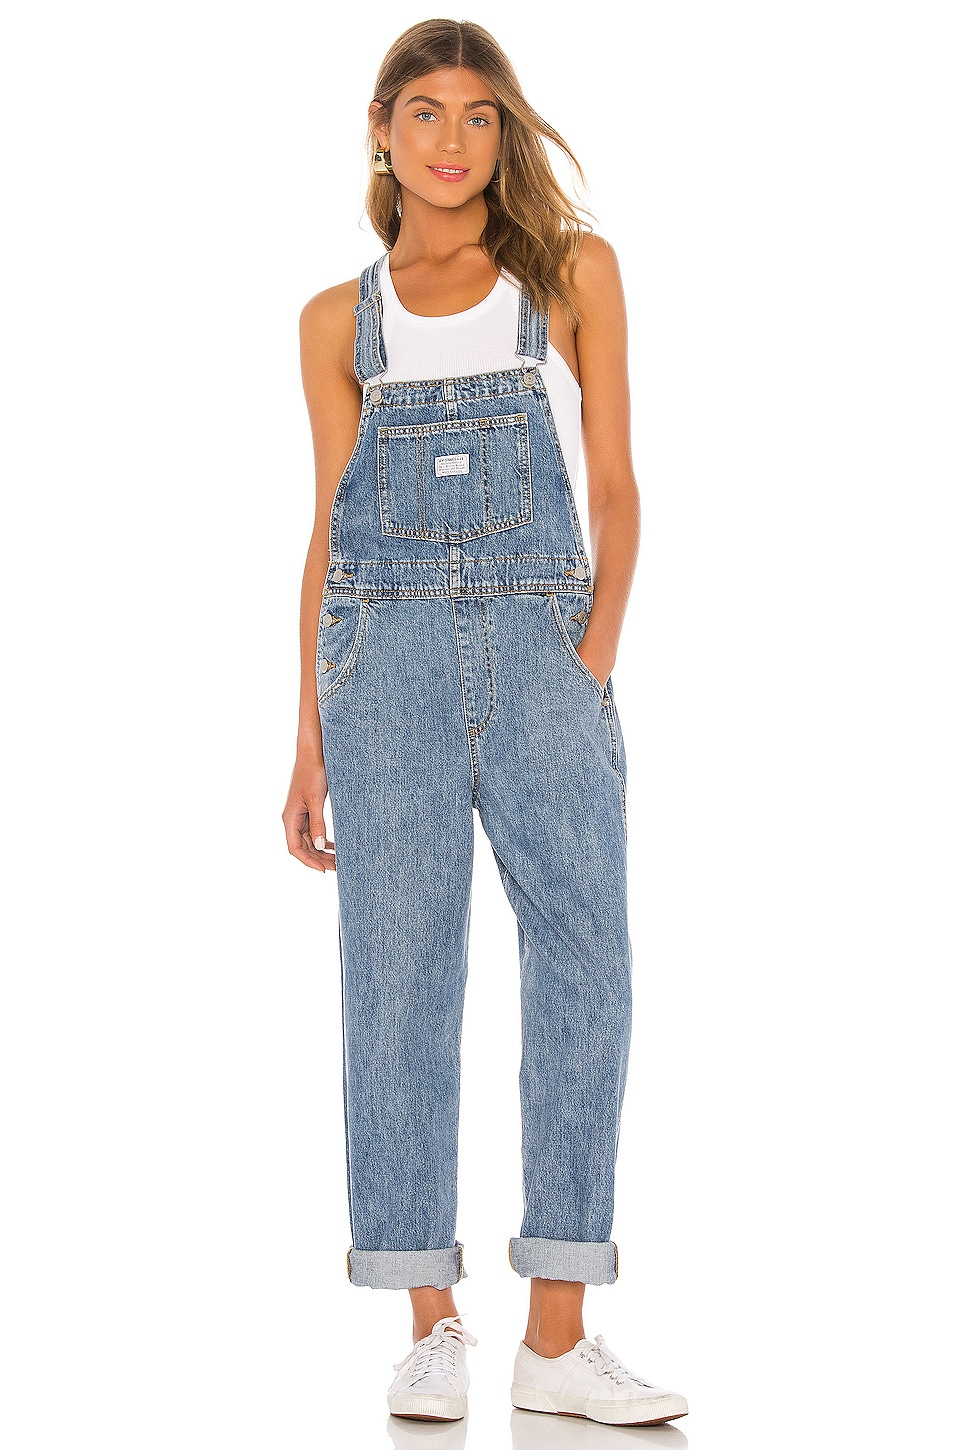 LEVI'S Vintage Overall in Dead Stone